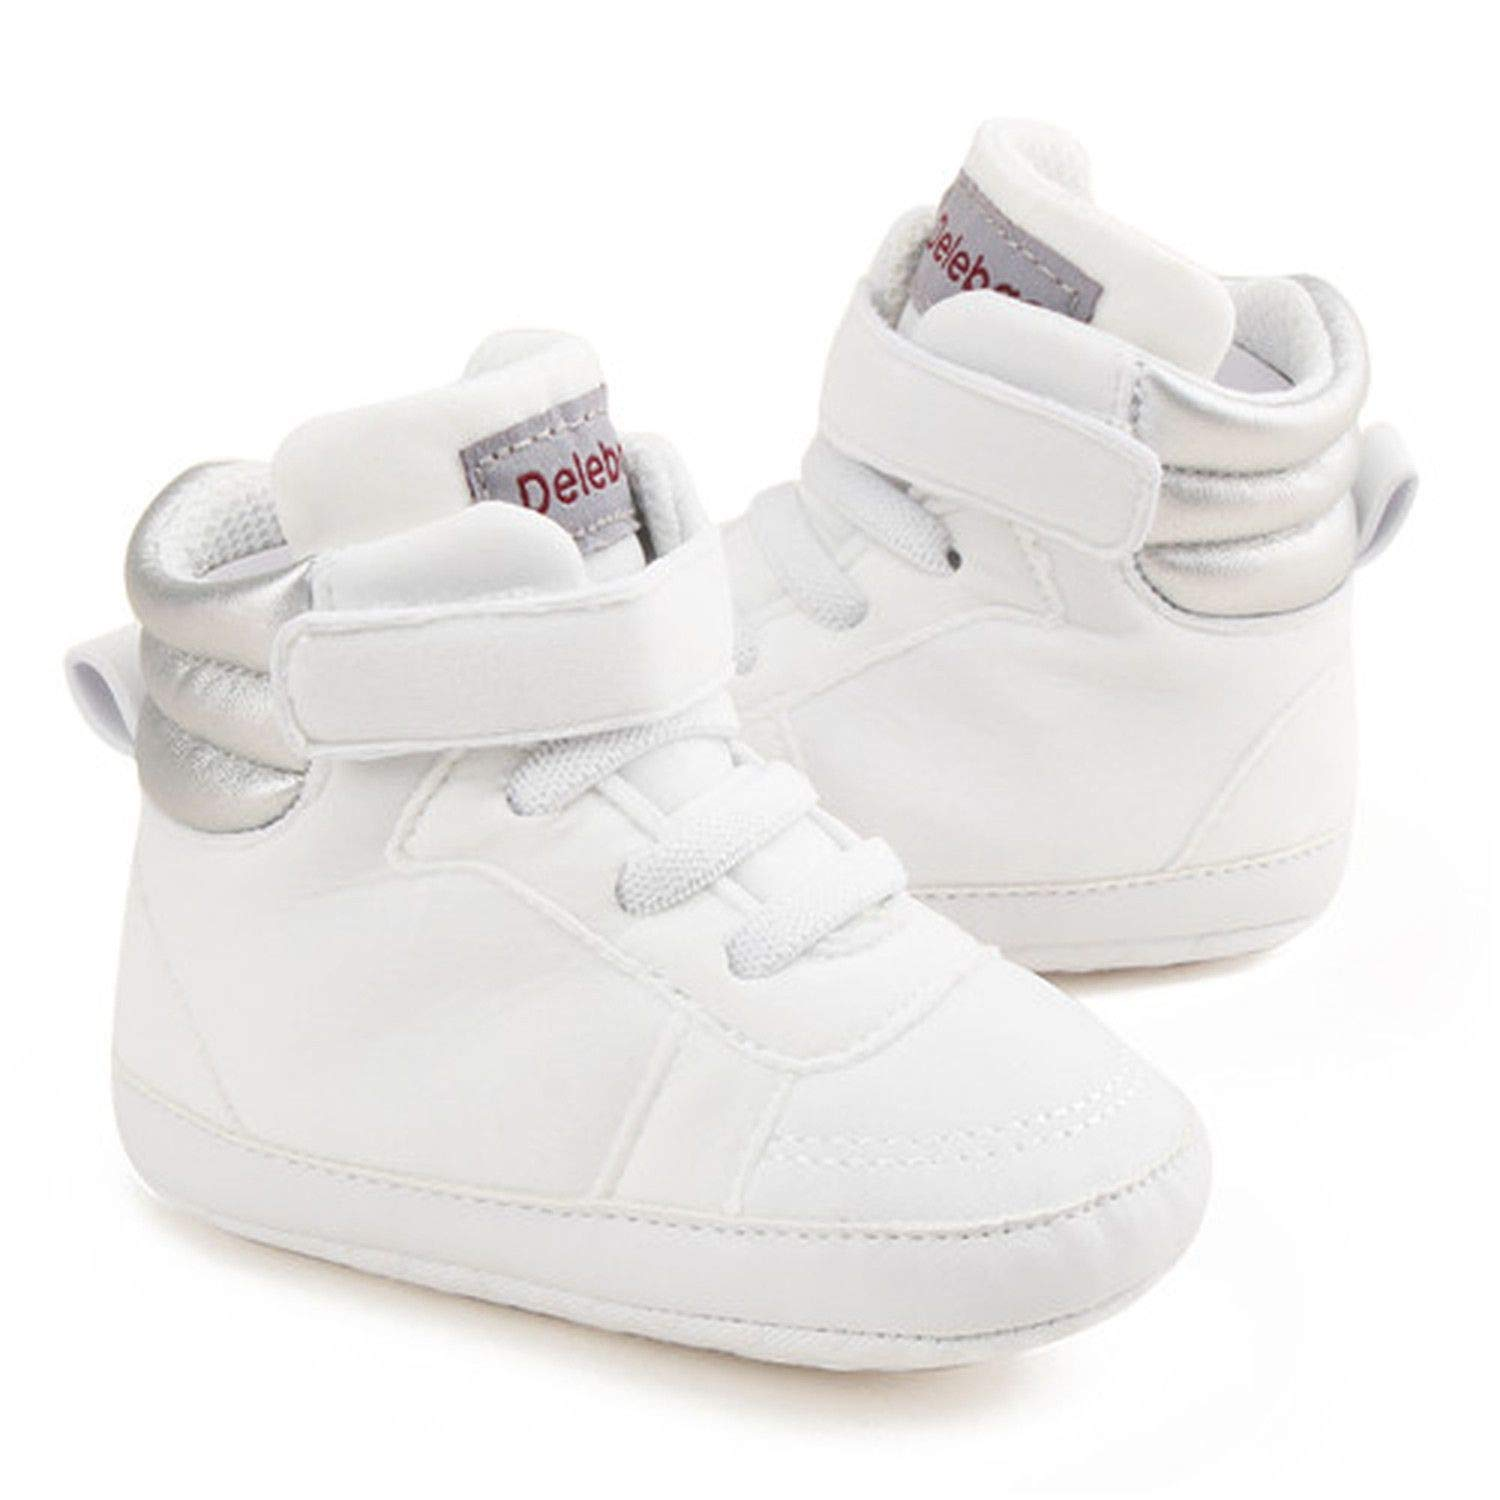 Autumn Spring Soft Bottom Toddler Shoes Baby Shoes Cotton Shoes Keep Warm Lace Up First Walkers